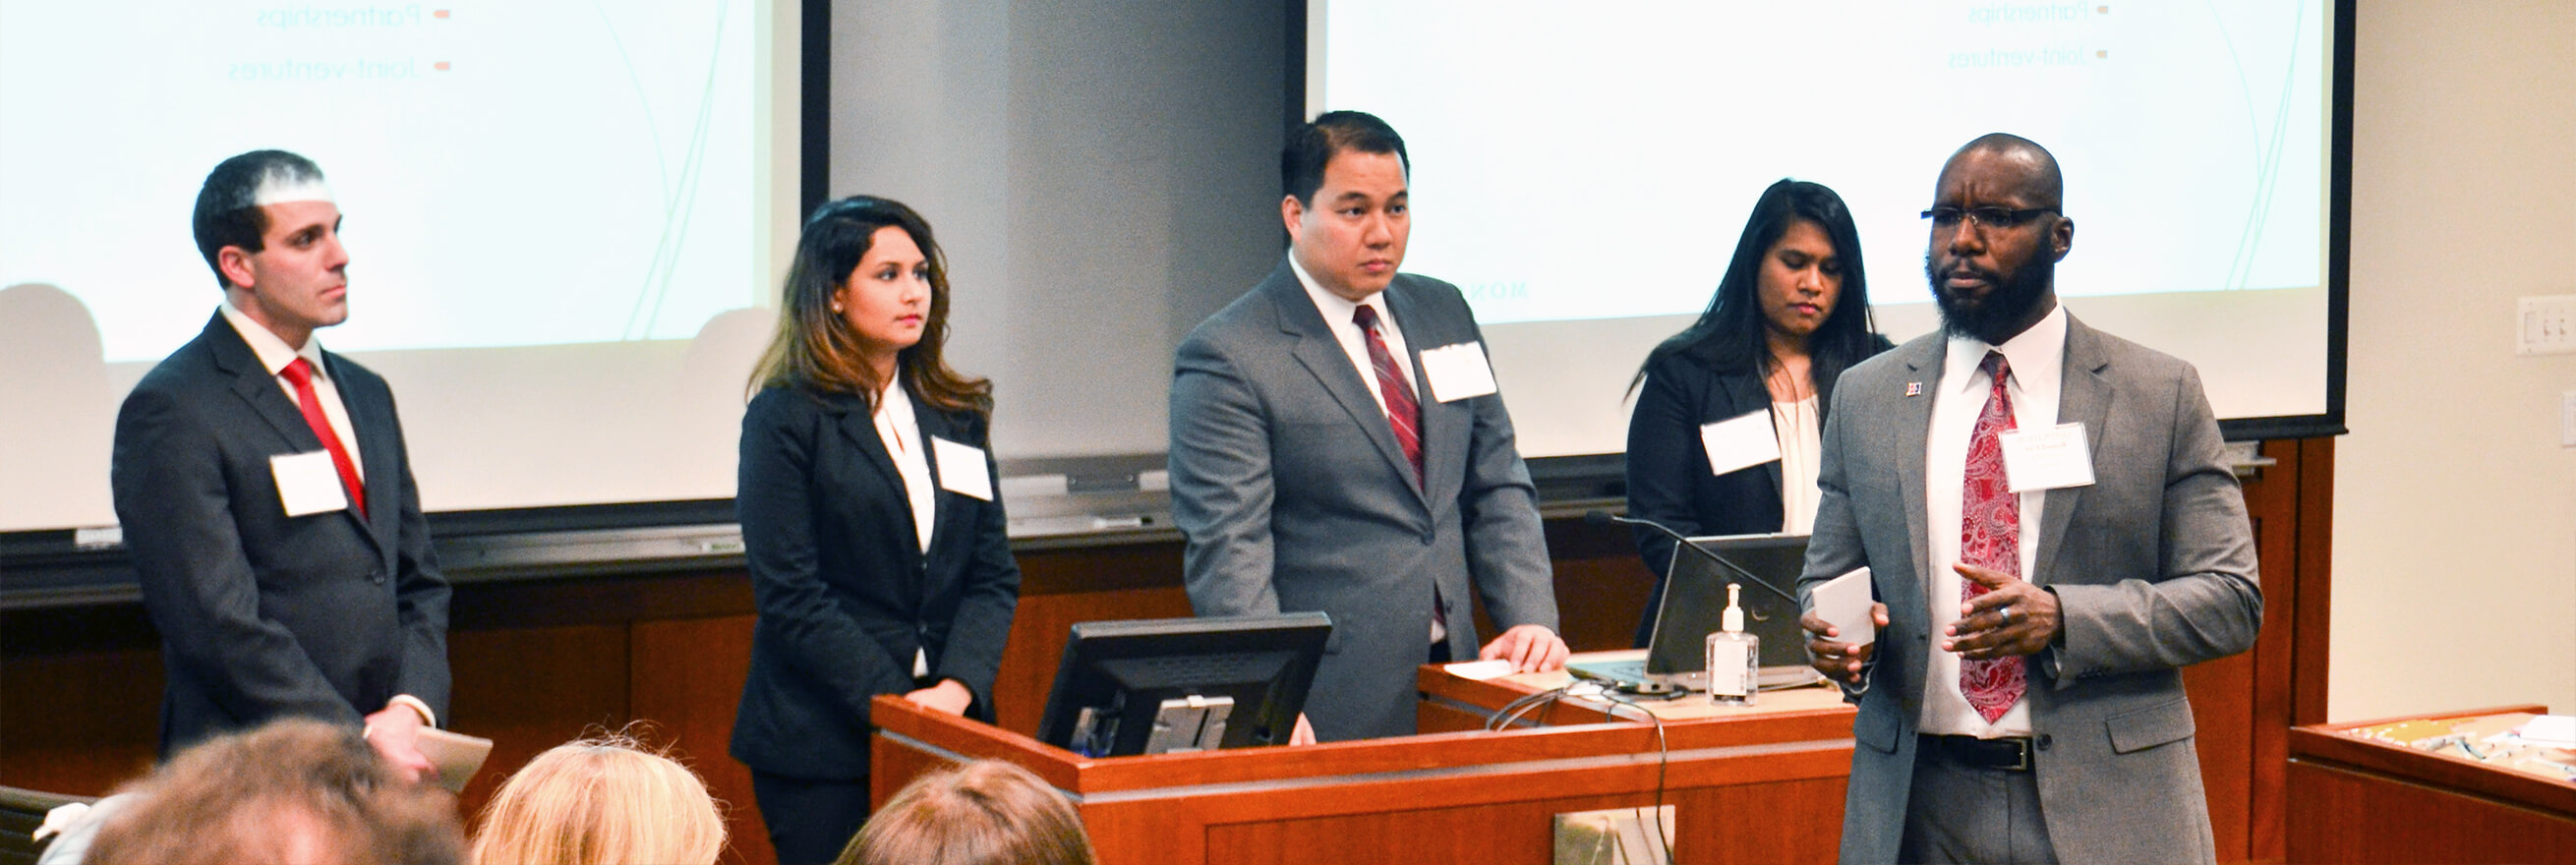 MBA students present during Kogod's Annual Case Competition